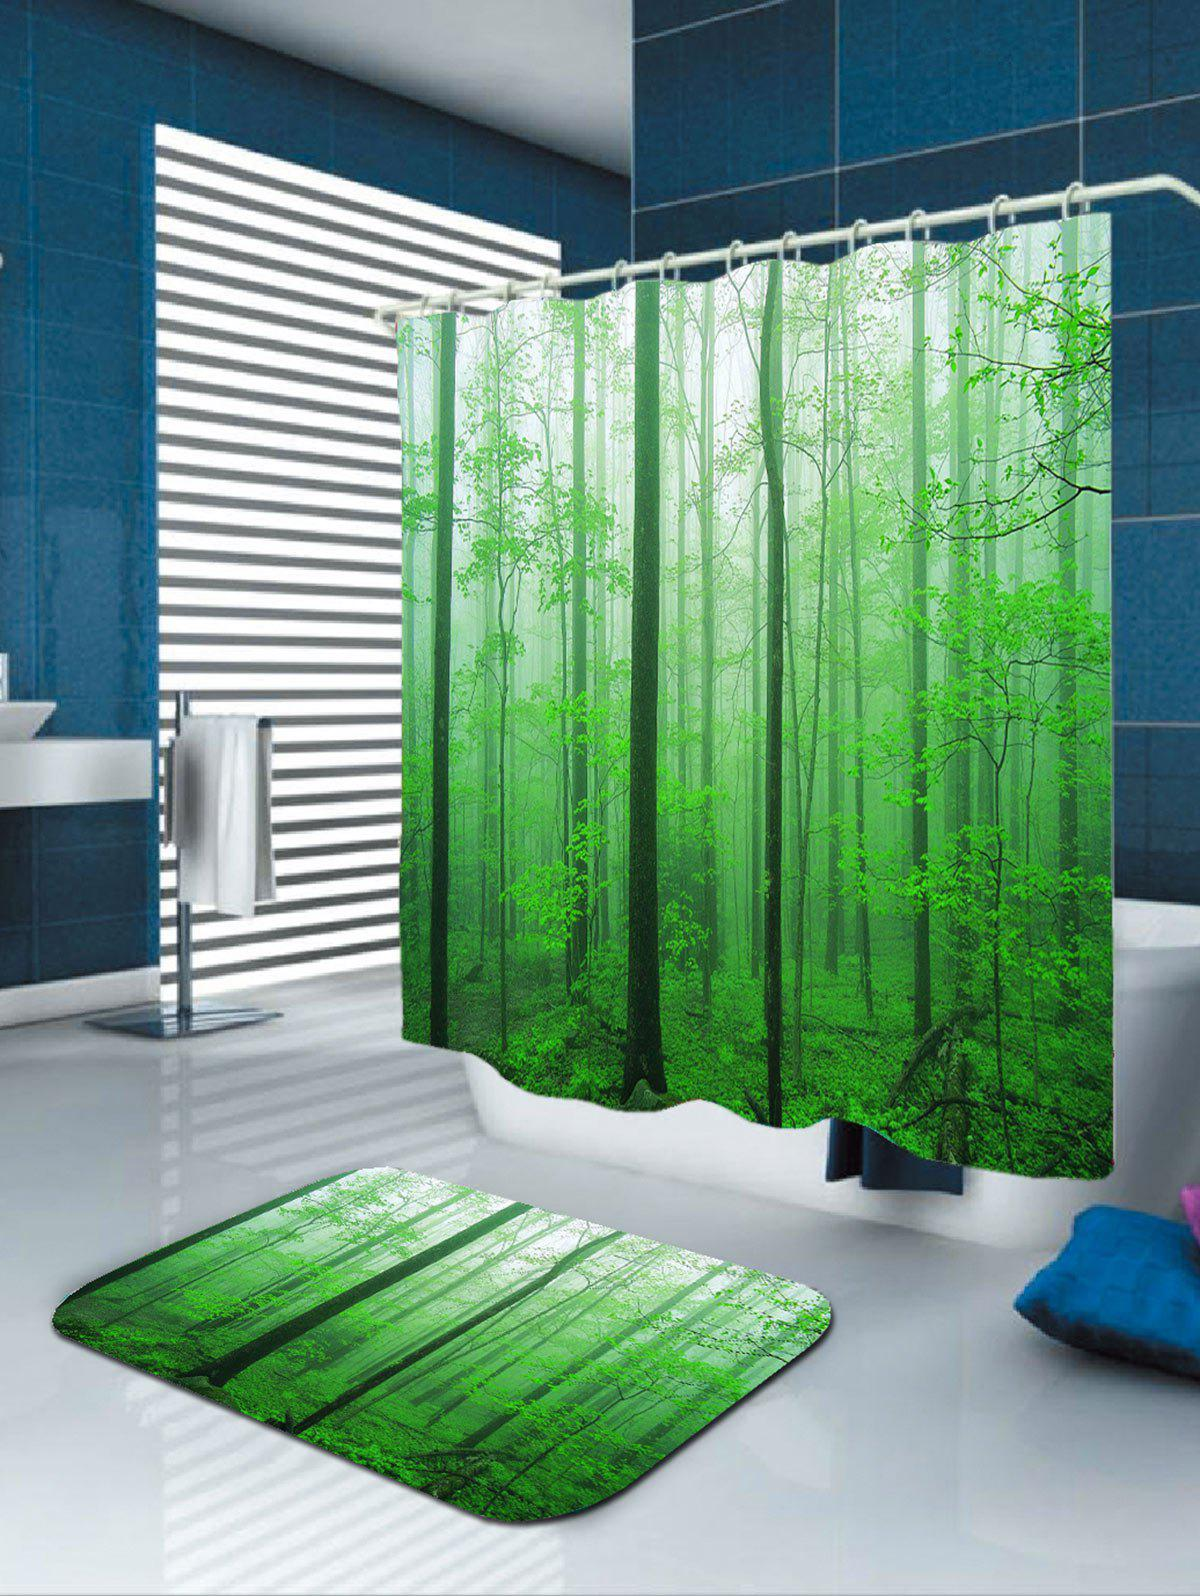 2018 rideau de douche l 39 ext rieur de la for t brumeuse imperm able l 39 eau green largeur. Black Bedroom Furniture Sets. Home Design Ideas